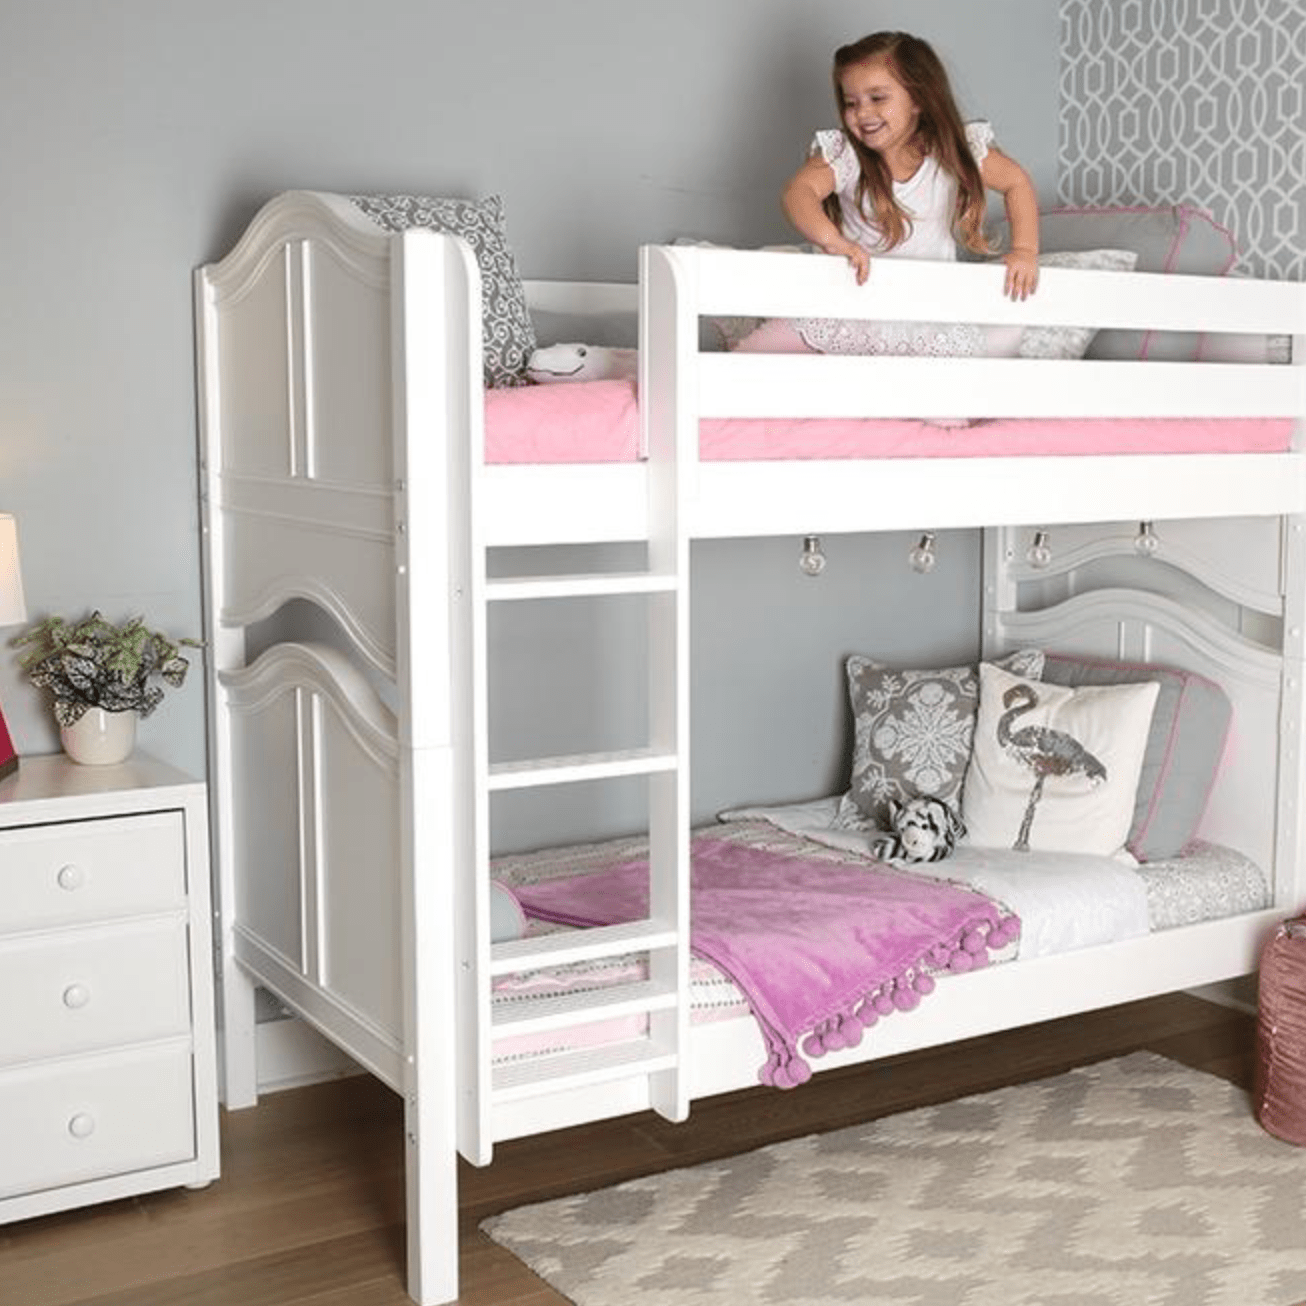 Maxtrix Low Bunk Beds With Ladder Caste Kids And Cribs